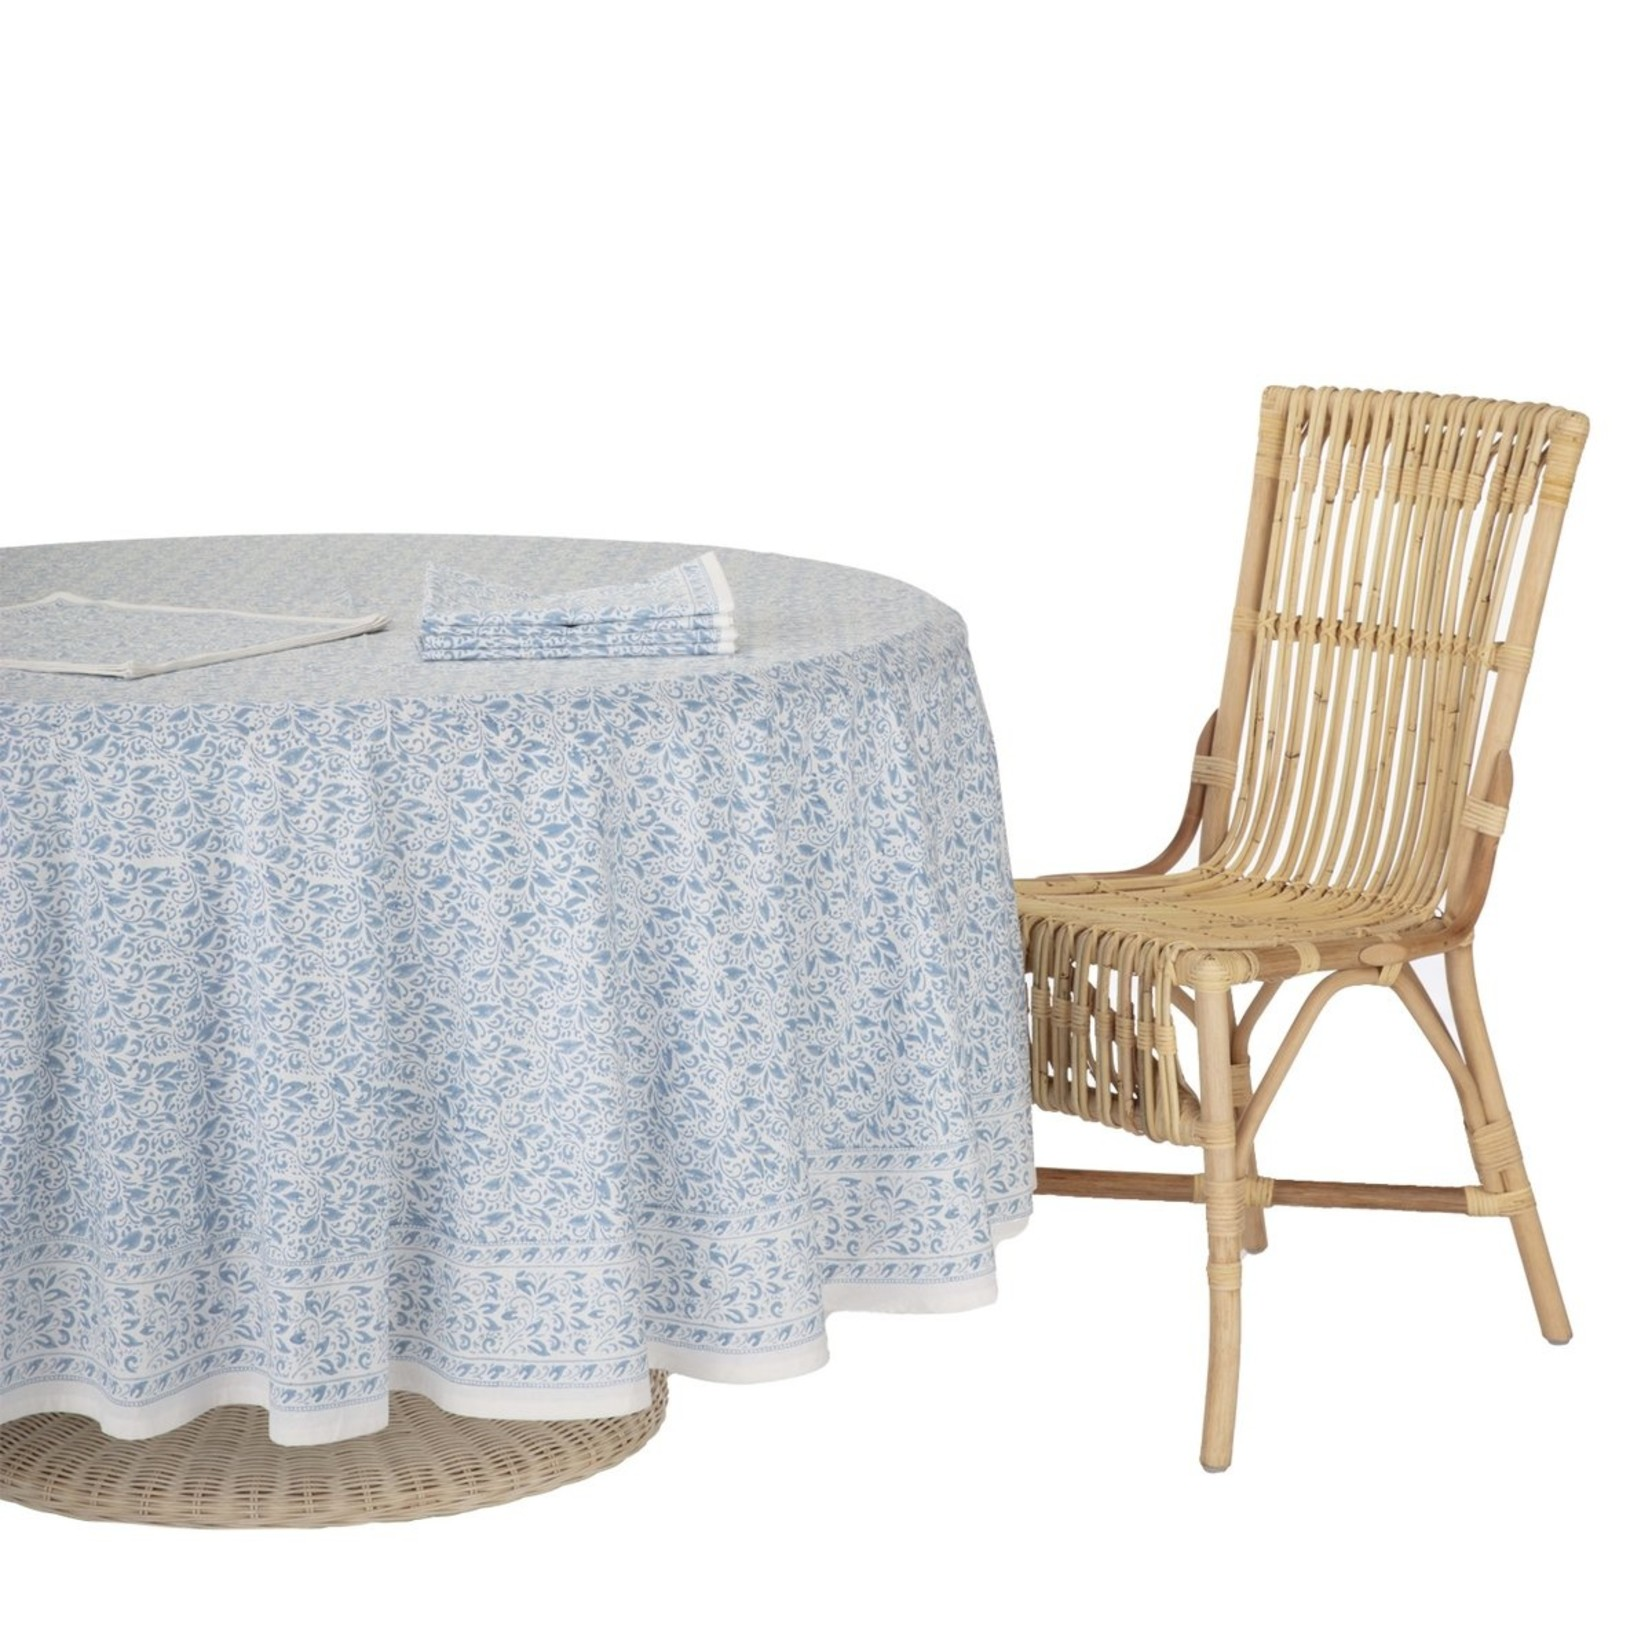 Amanda Lindroth Hand-Blocked Nira Tablecloth